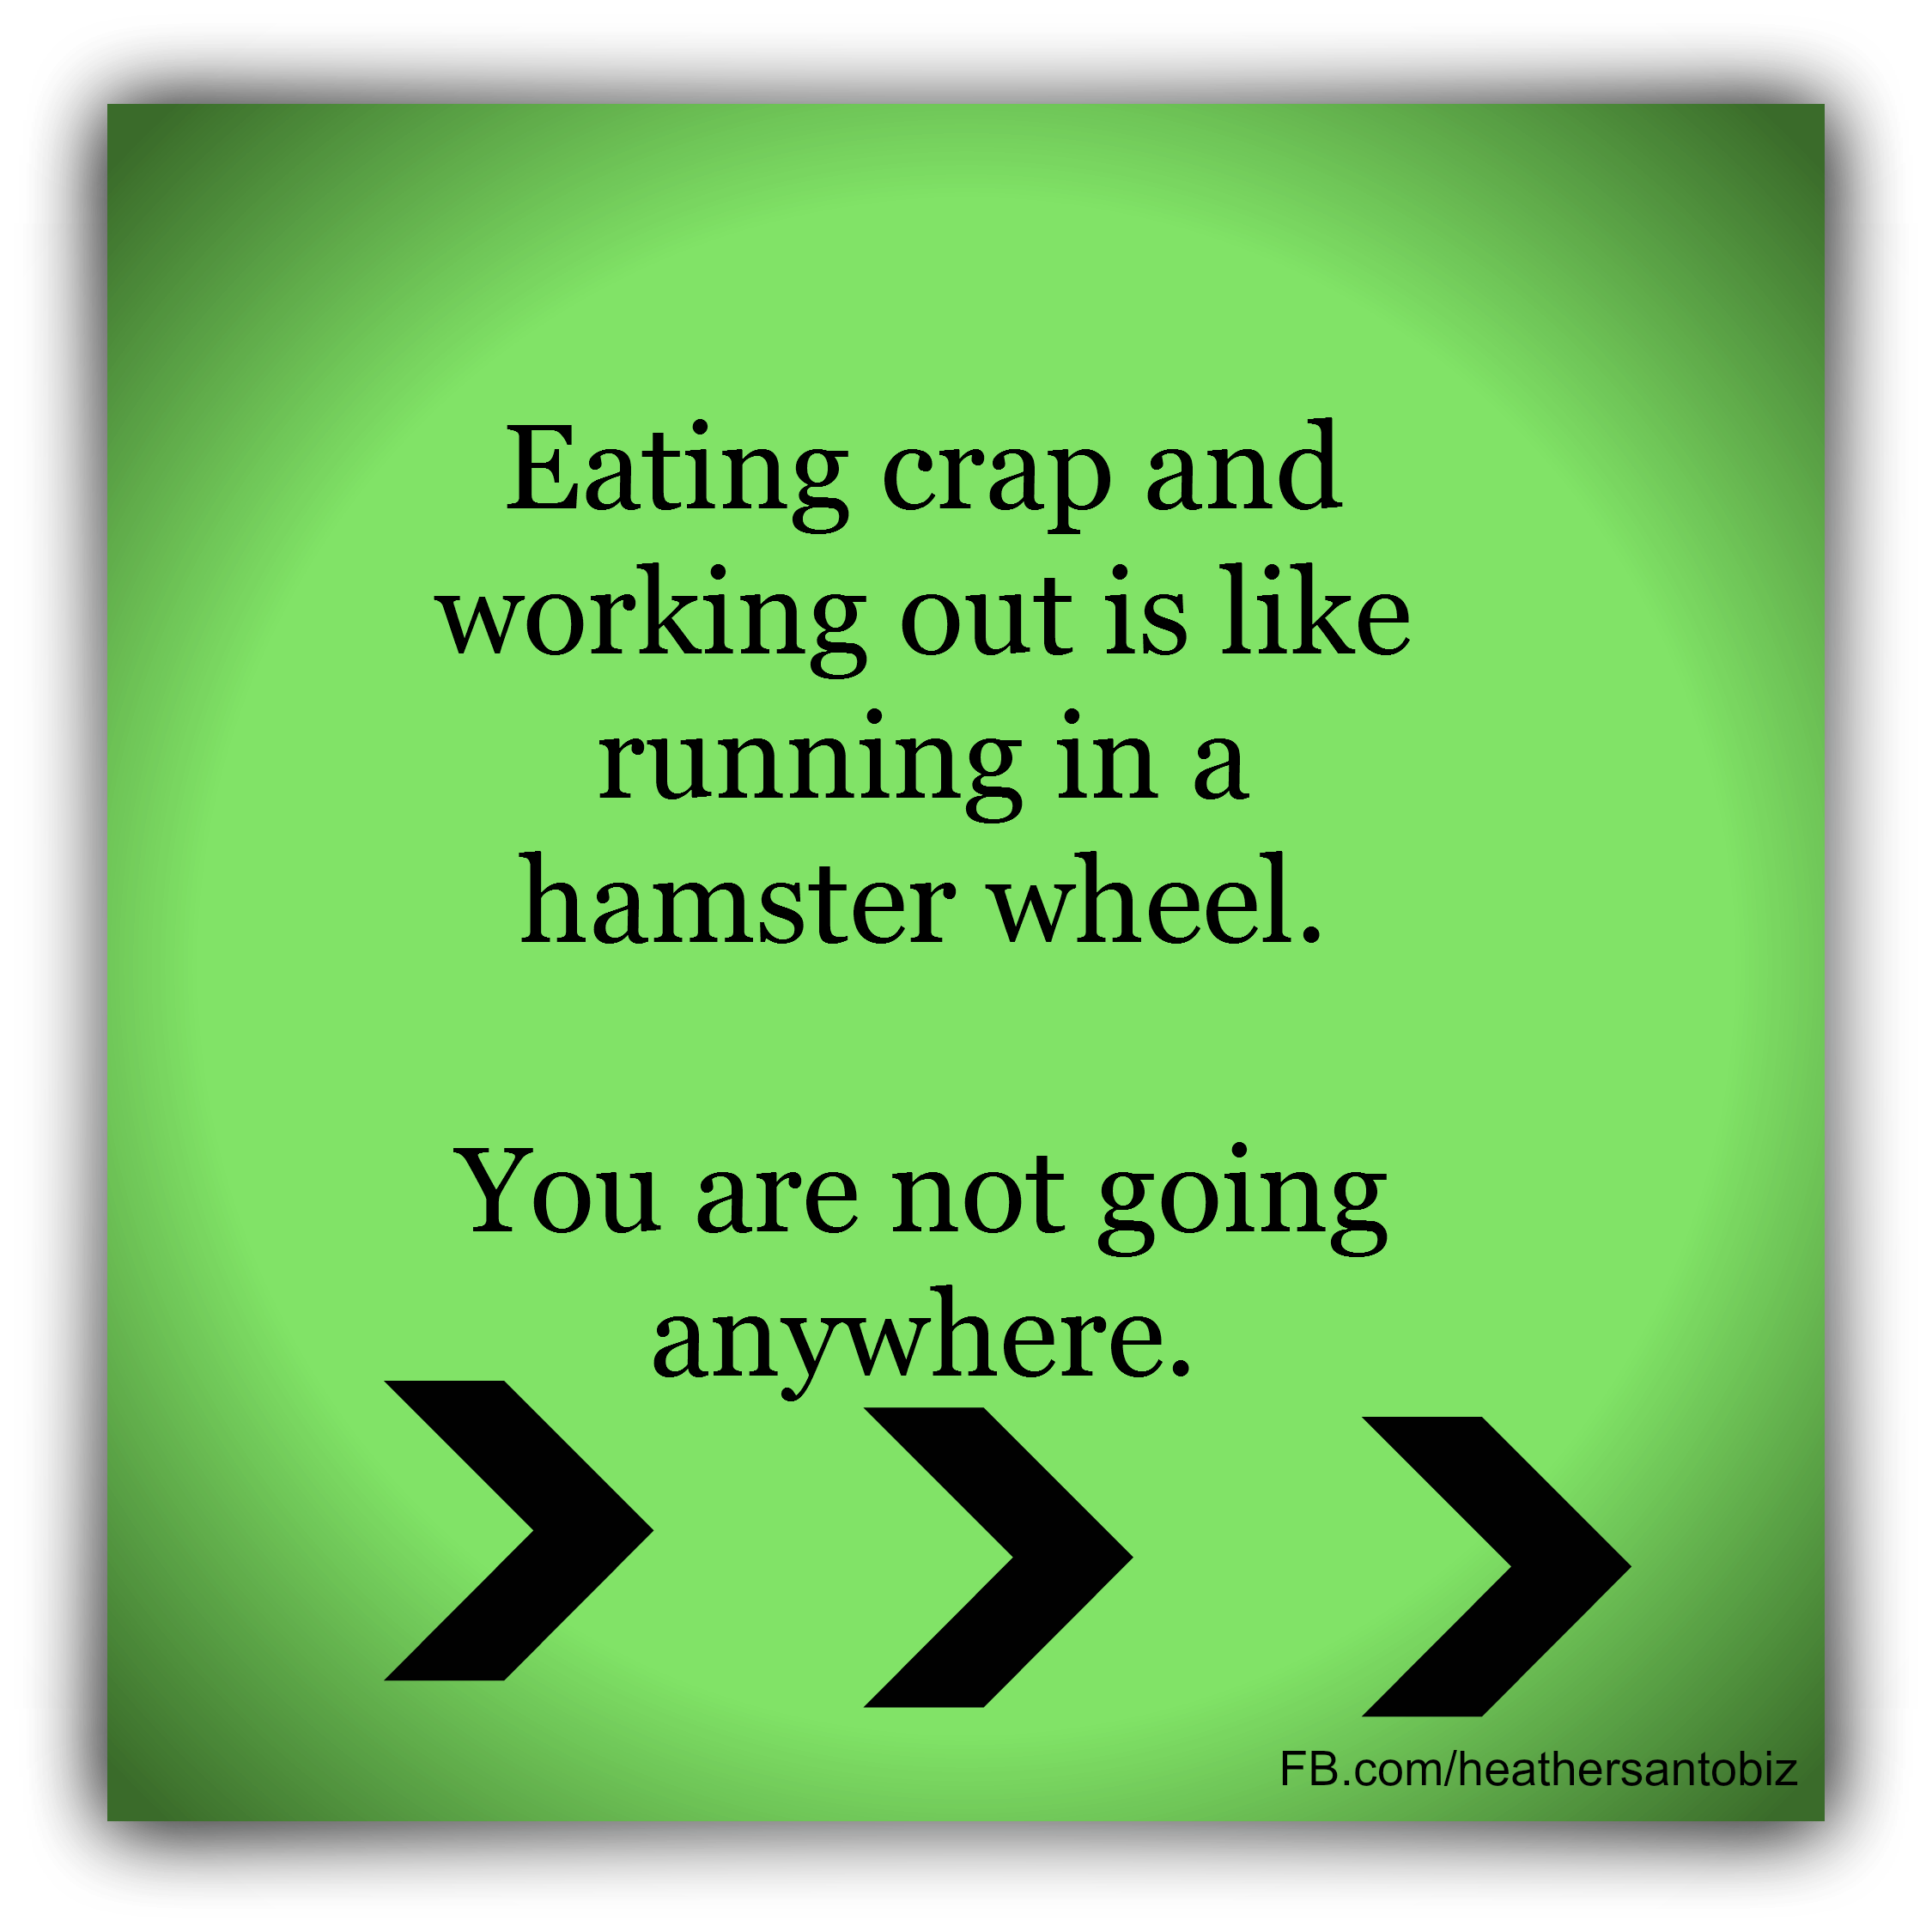 Eating crap and working out is like running in a hamster wheel. You are not going anywhere.  For more daily inspiration head to www.facebook.com/heathersantobiz